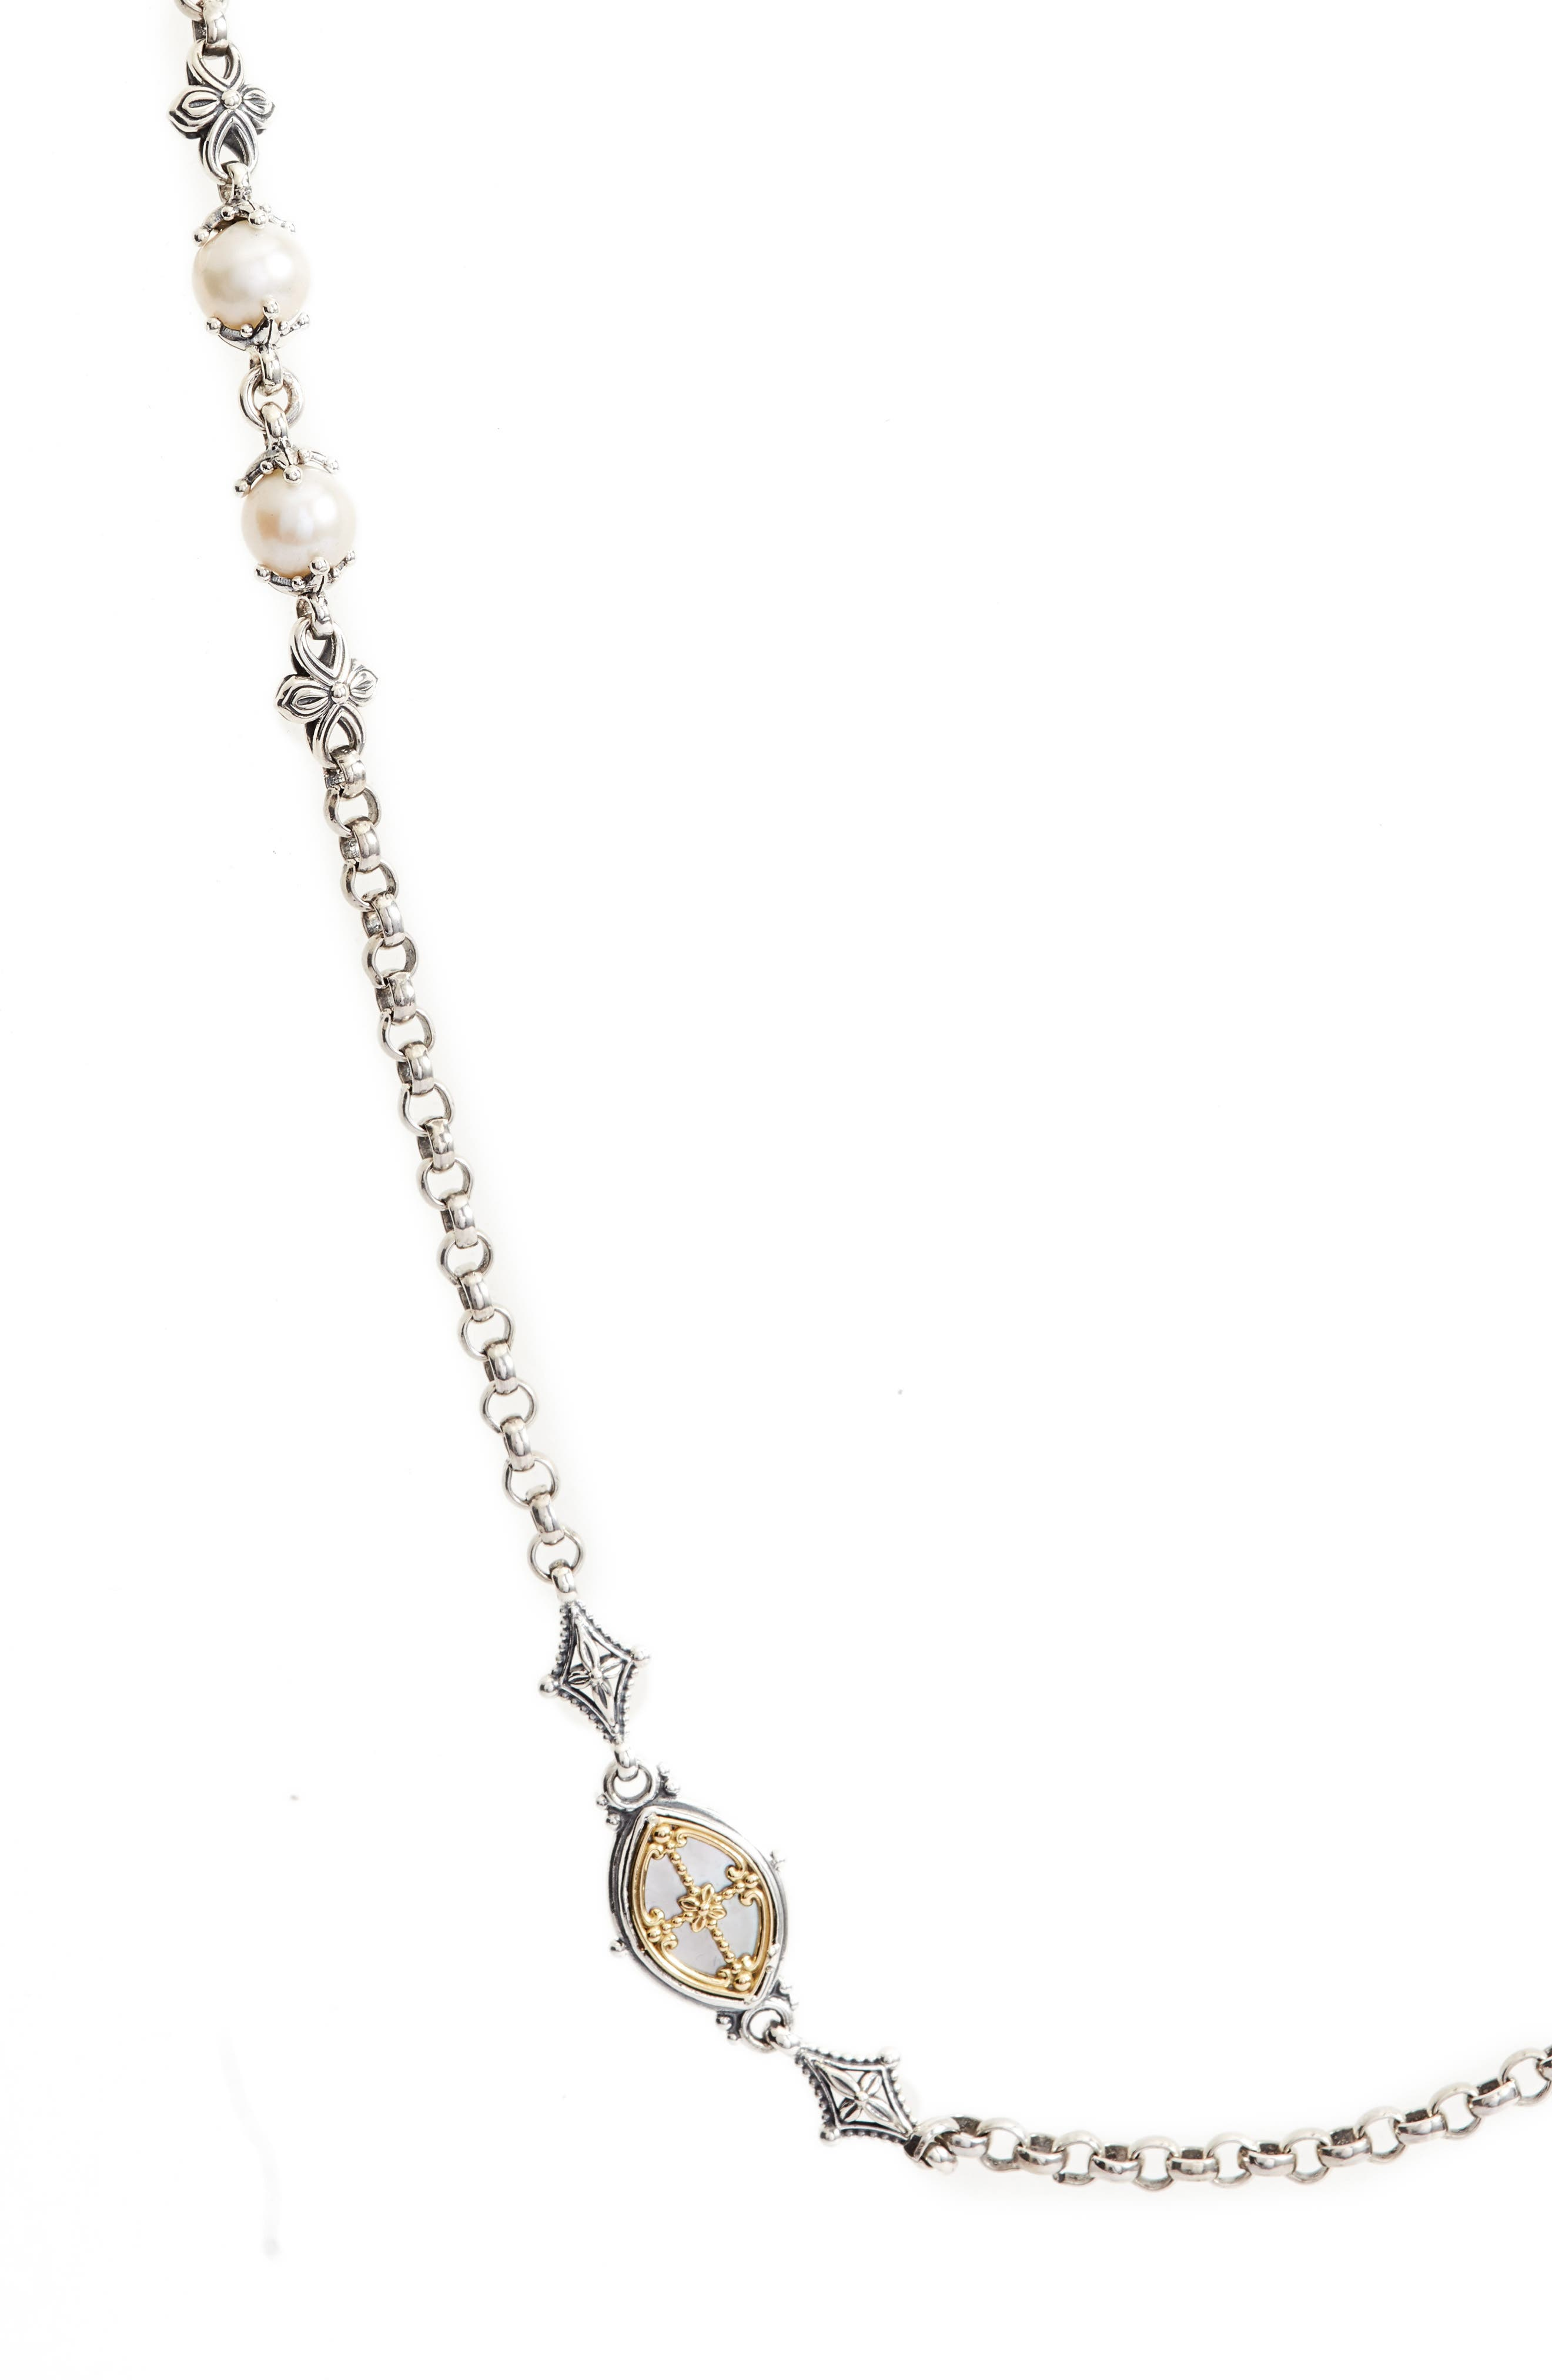 Etched Sterling Station Necklace with Genuine Pearl,                             Alternate thumbnail 2, color,                             SILVER/ GOLD/ WHITE